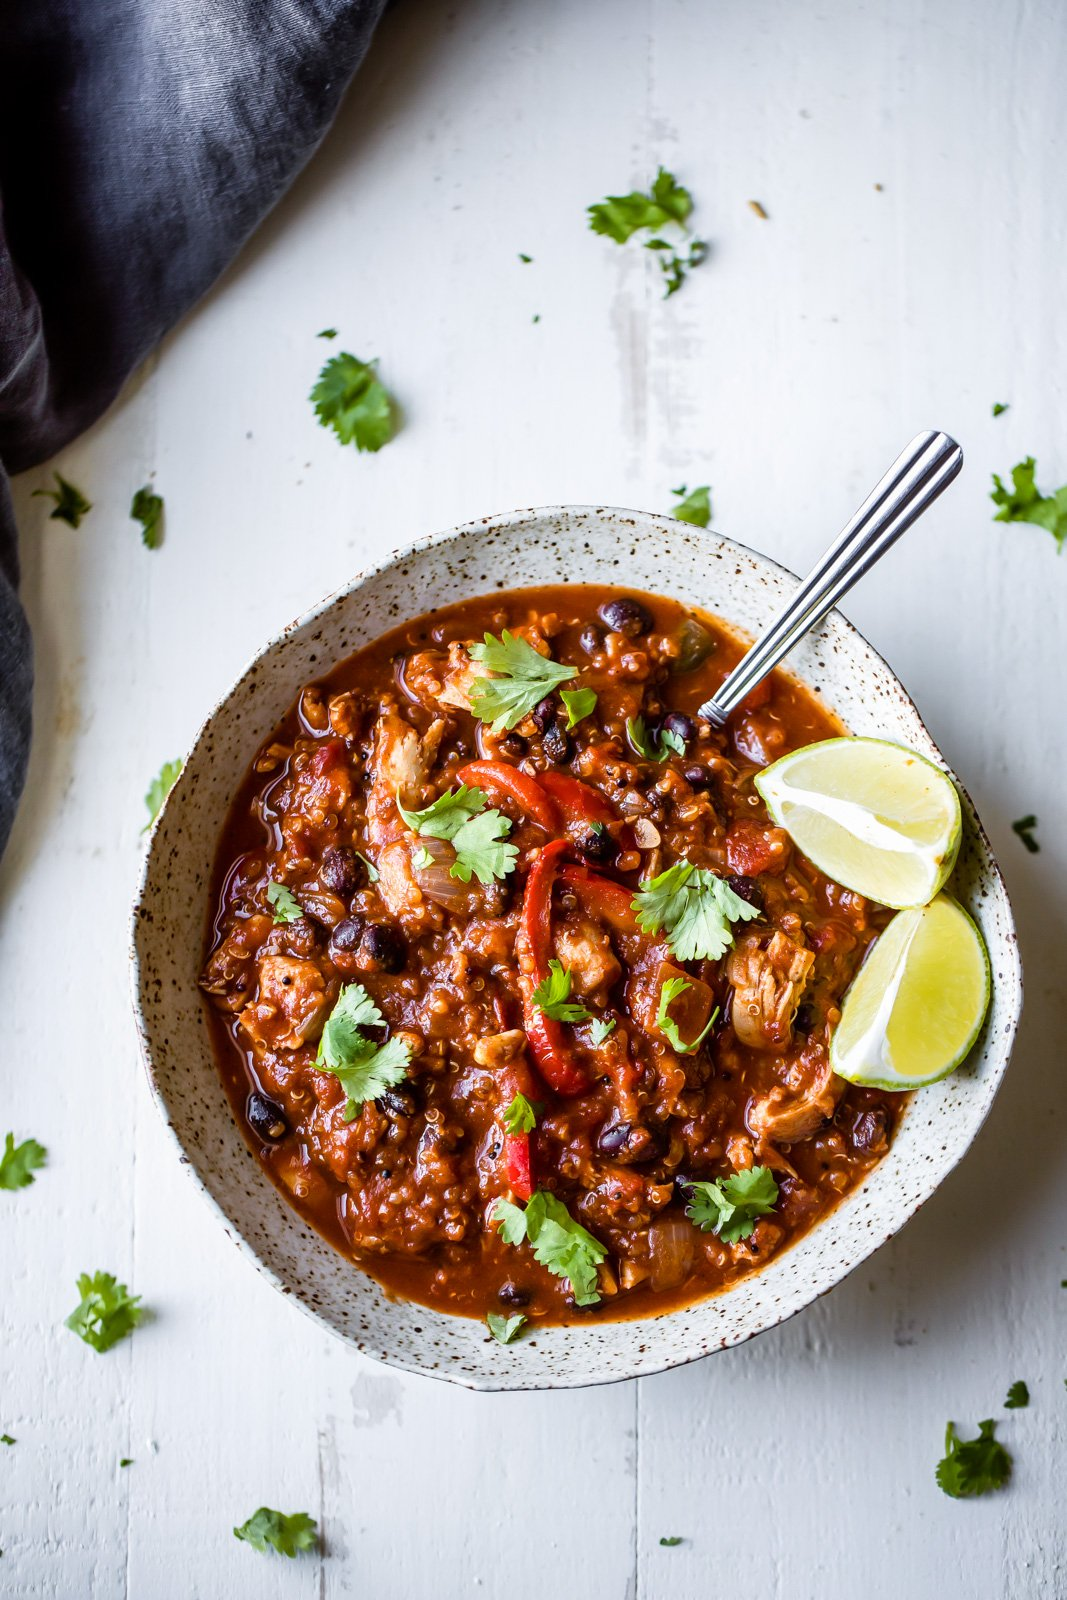 Chili in a bowl with lime wedges